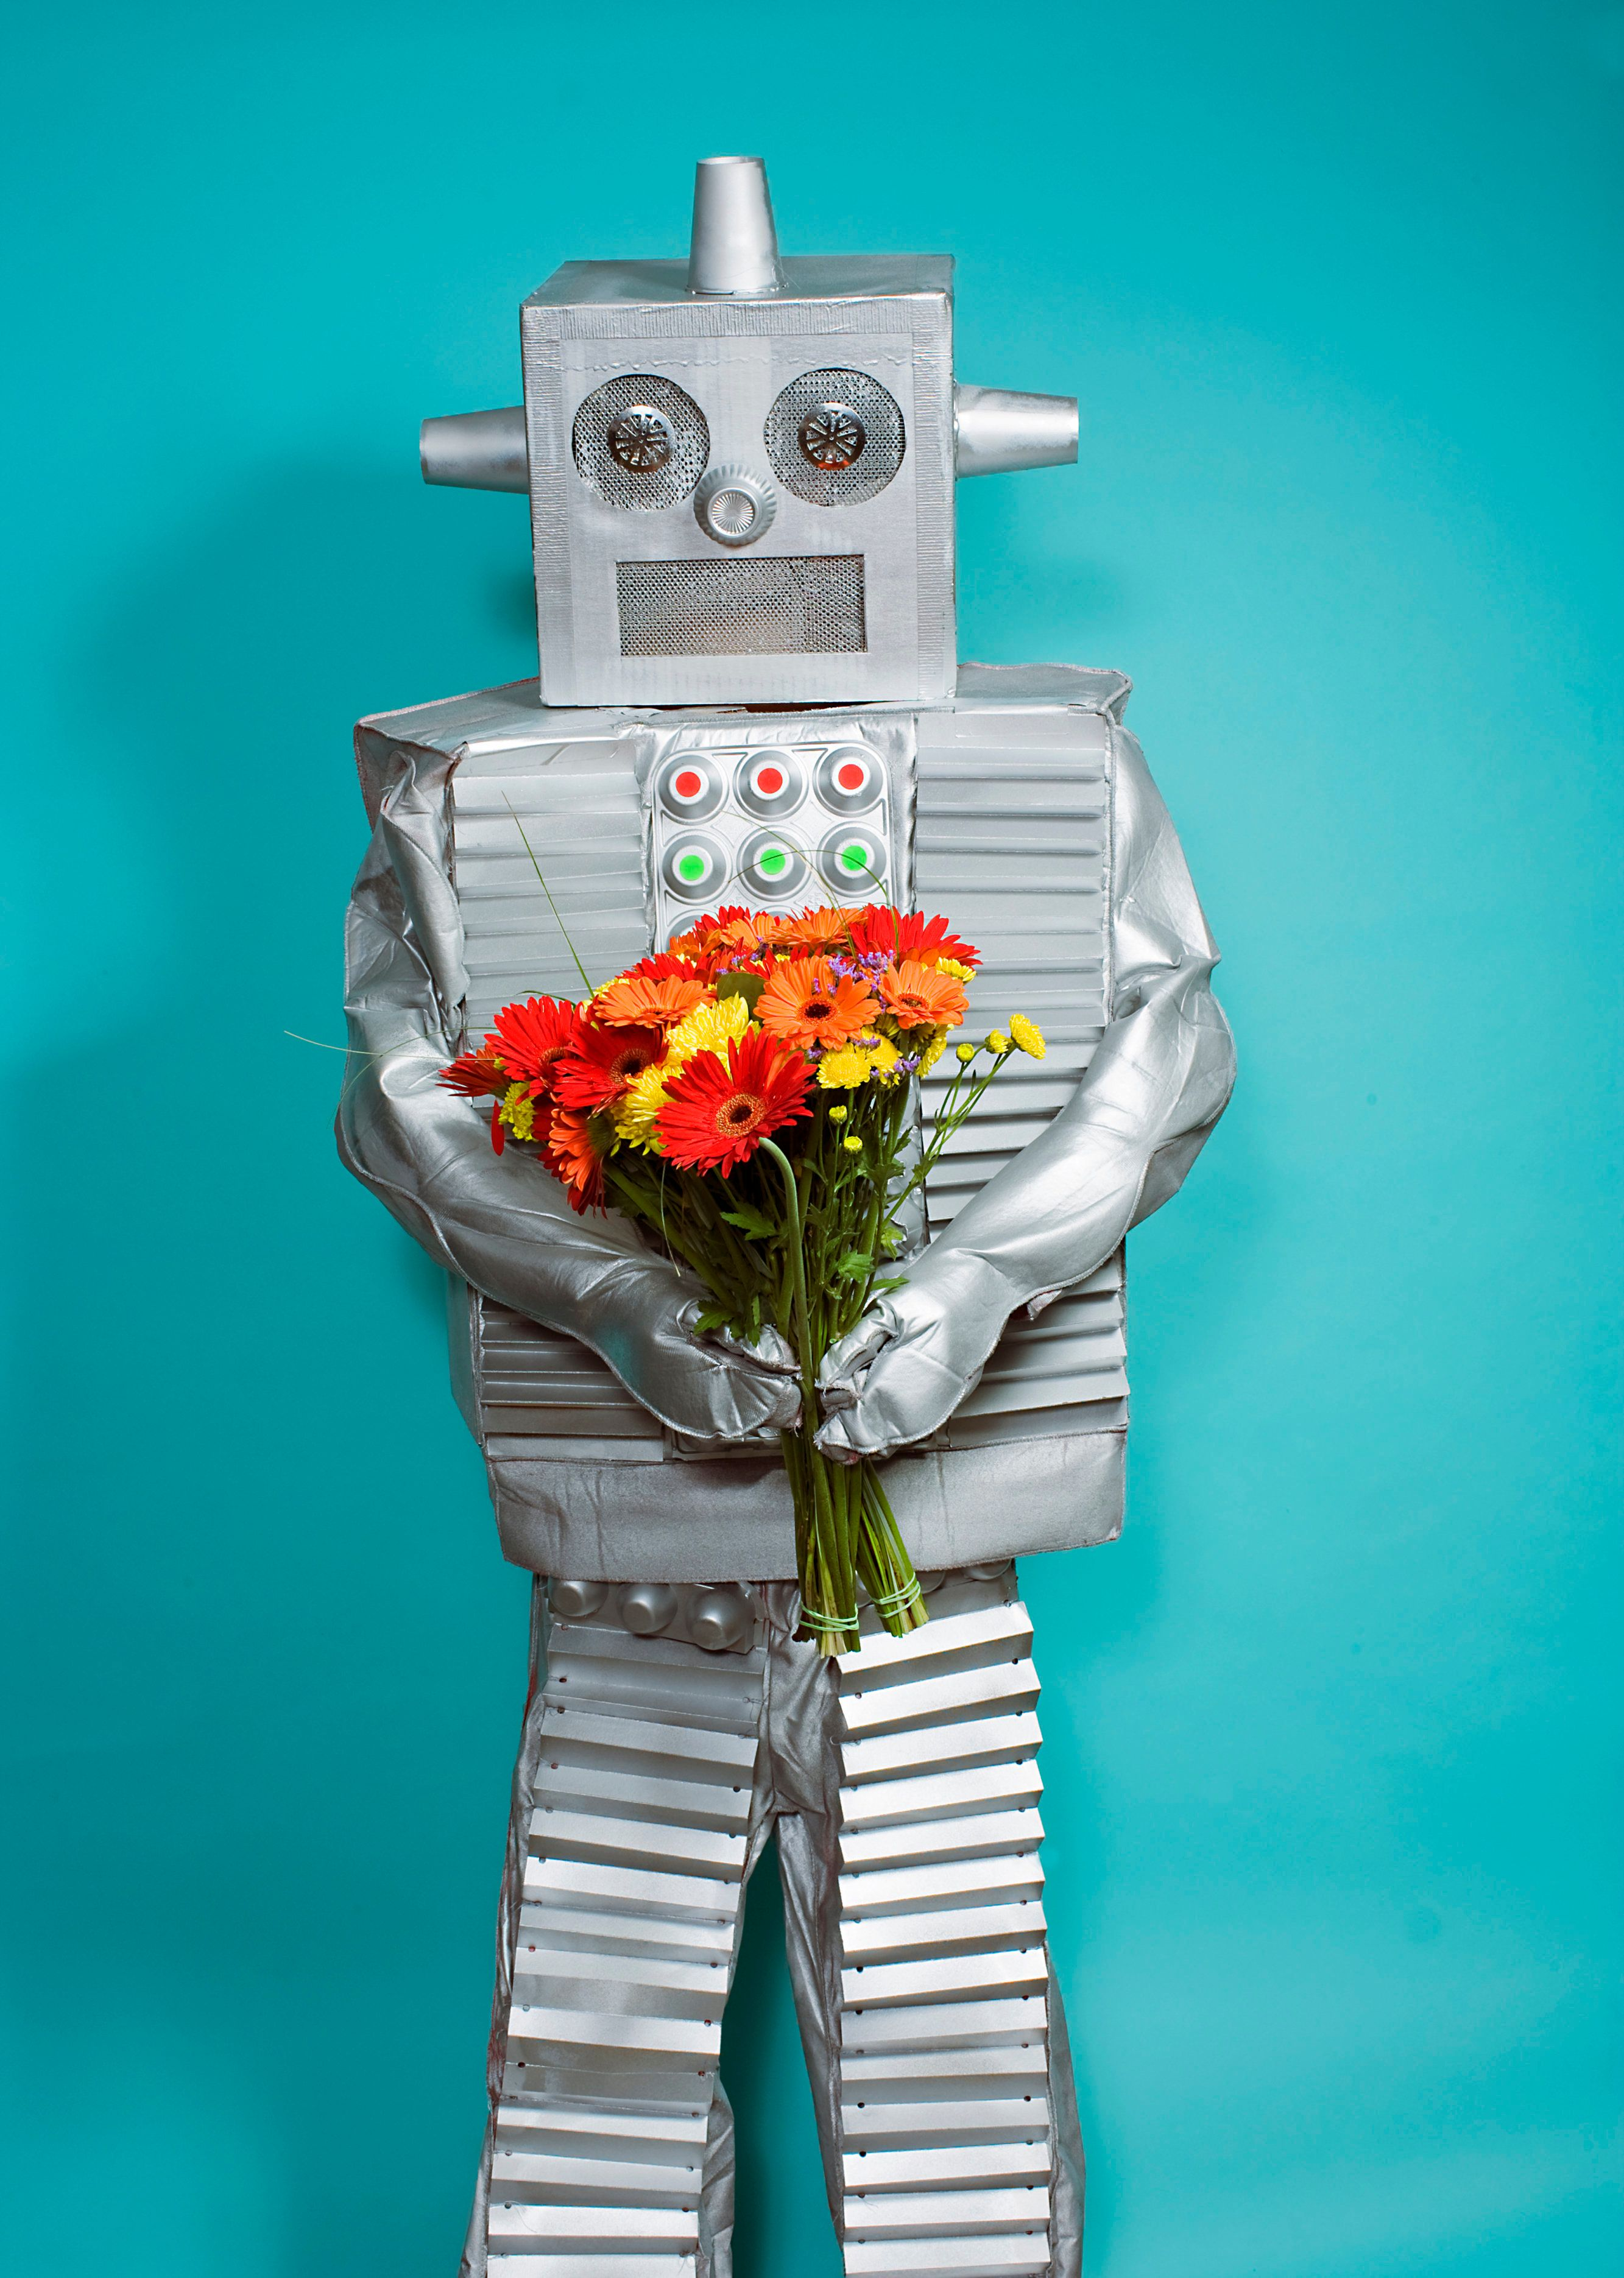 You know it's a real date when the robot brings flowers.